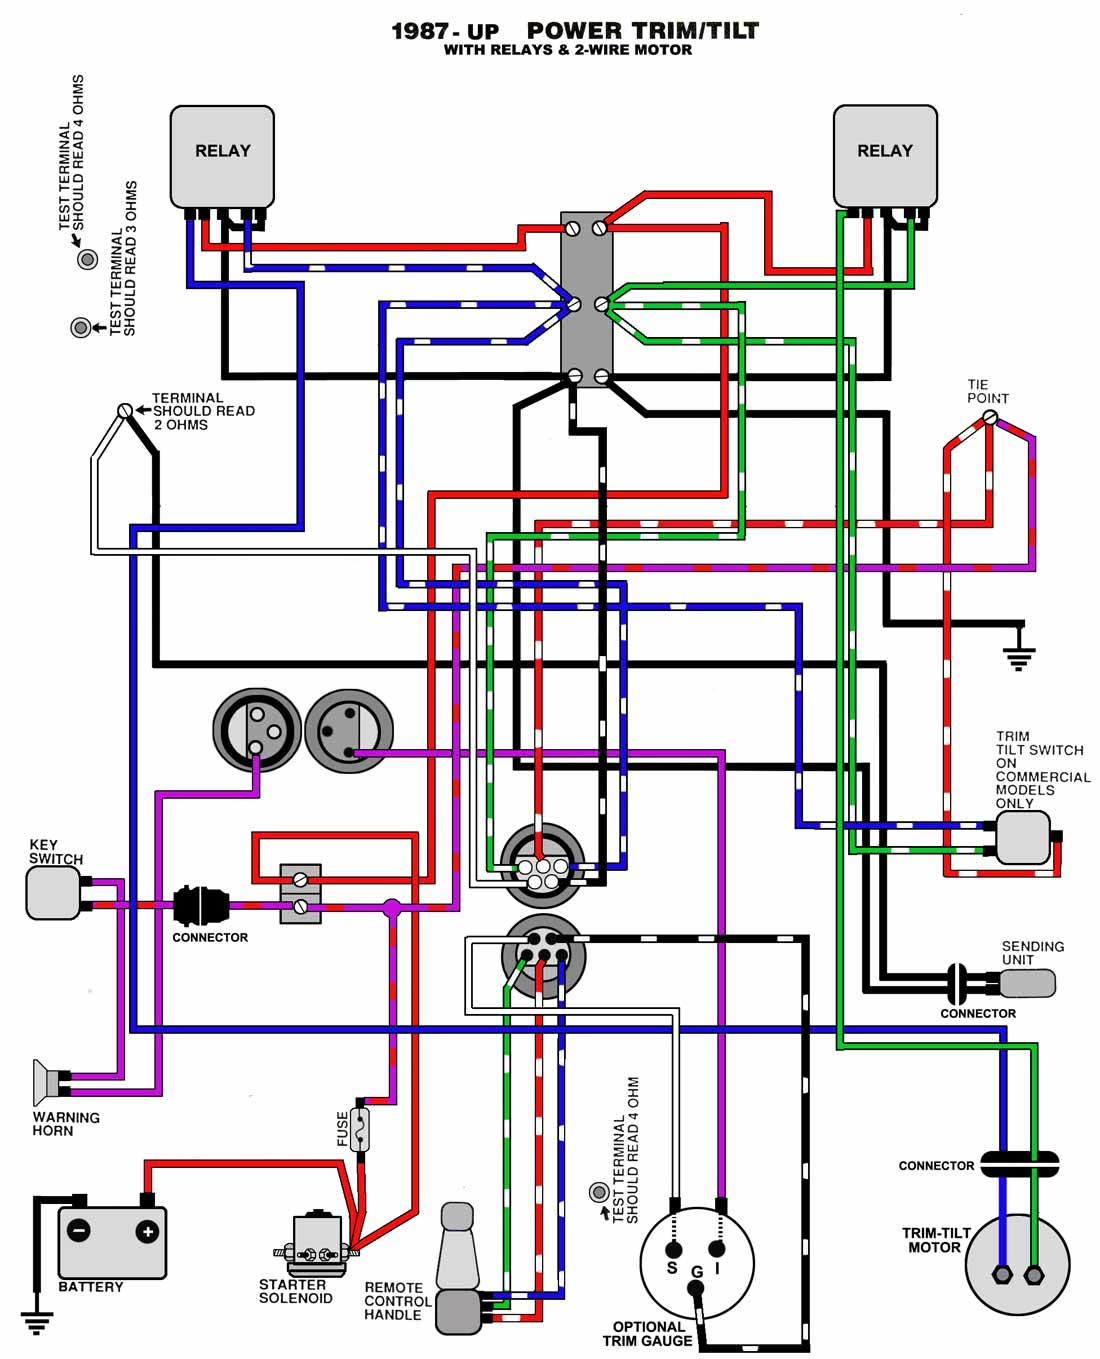 TnT_87_UP mastertech marine evinrude johnson outboard wiring diagrams johnson outboard ignition switch wiring diagram at creativeand.co